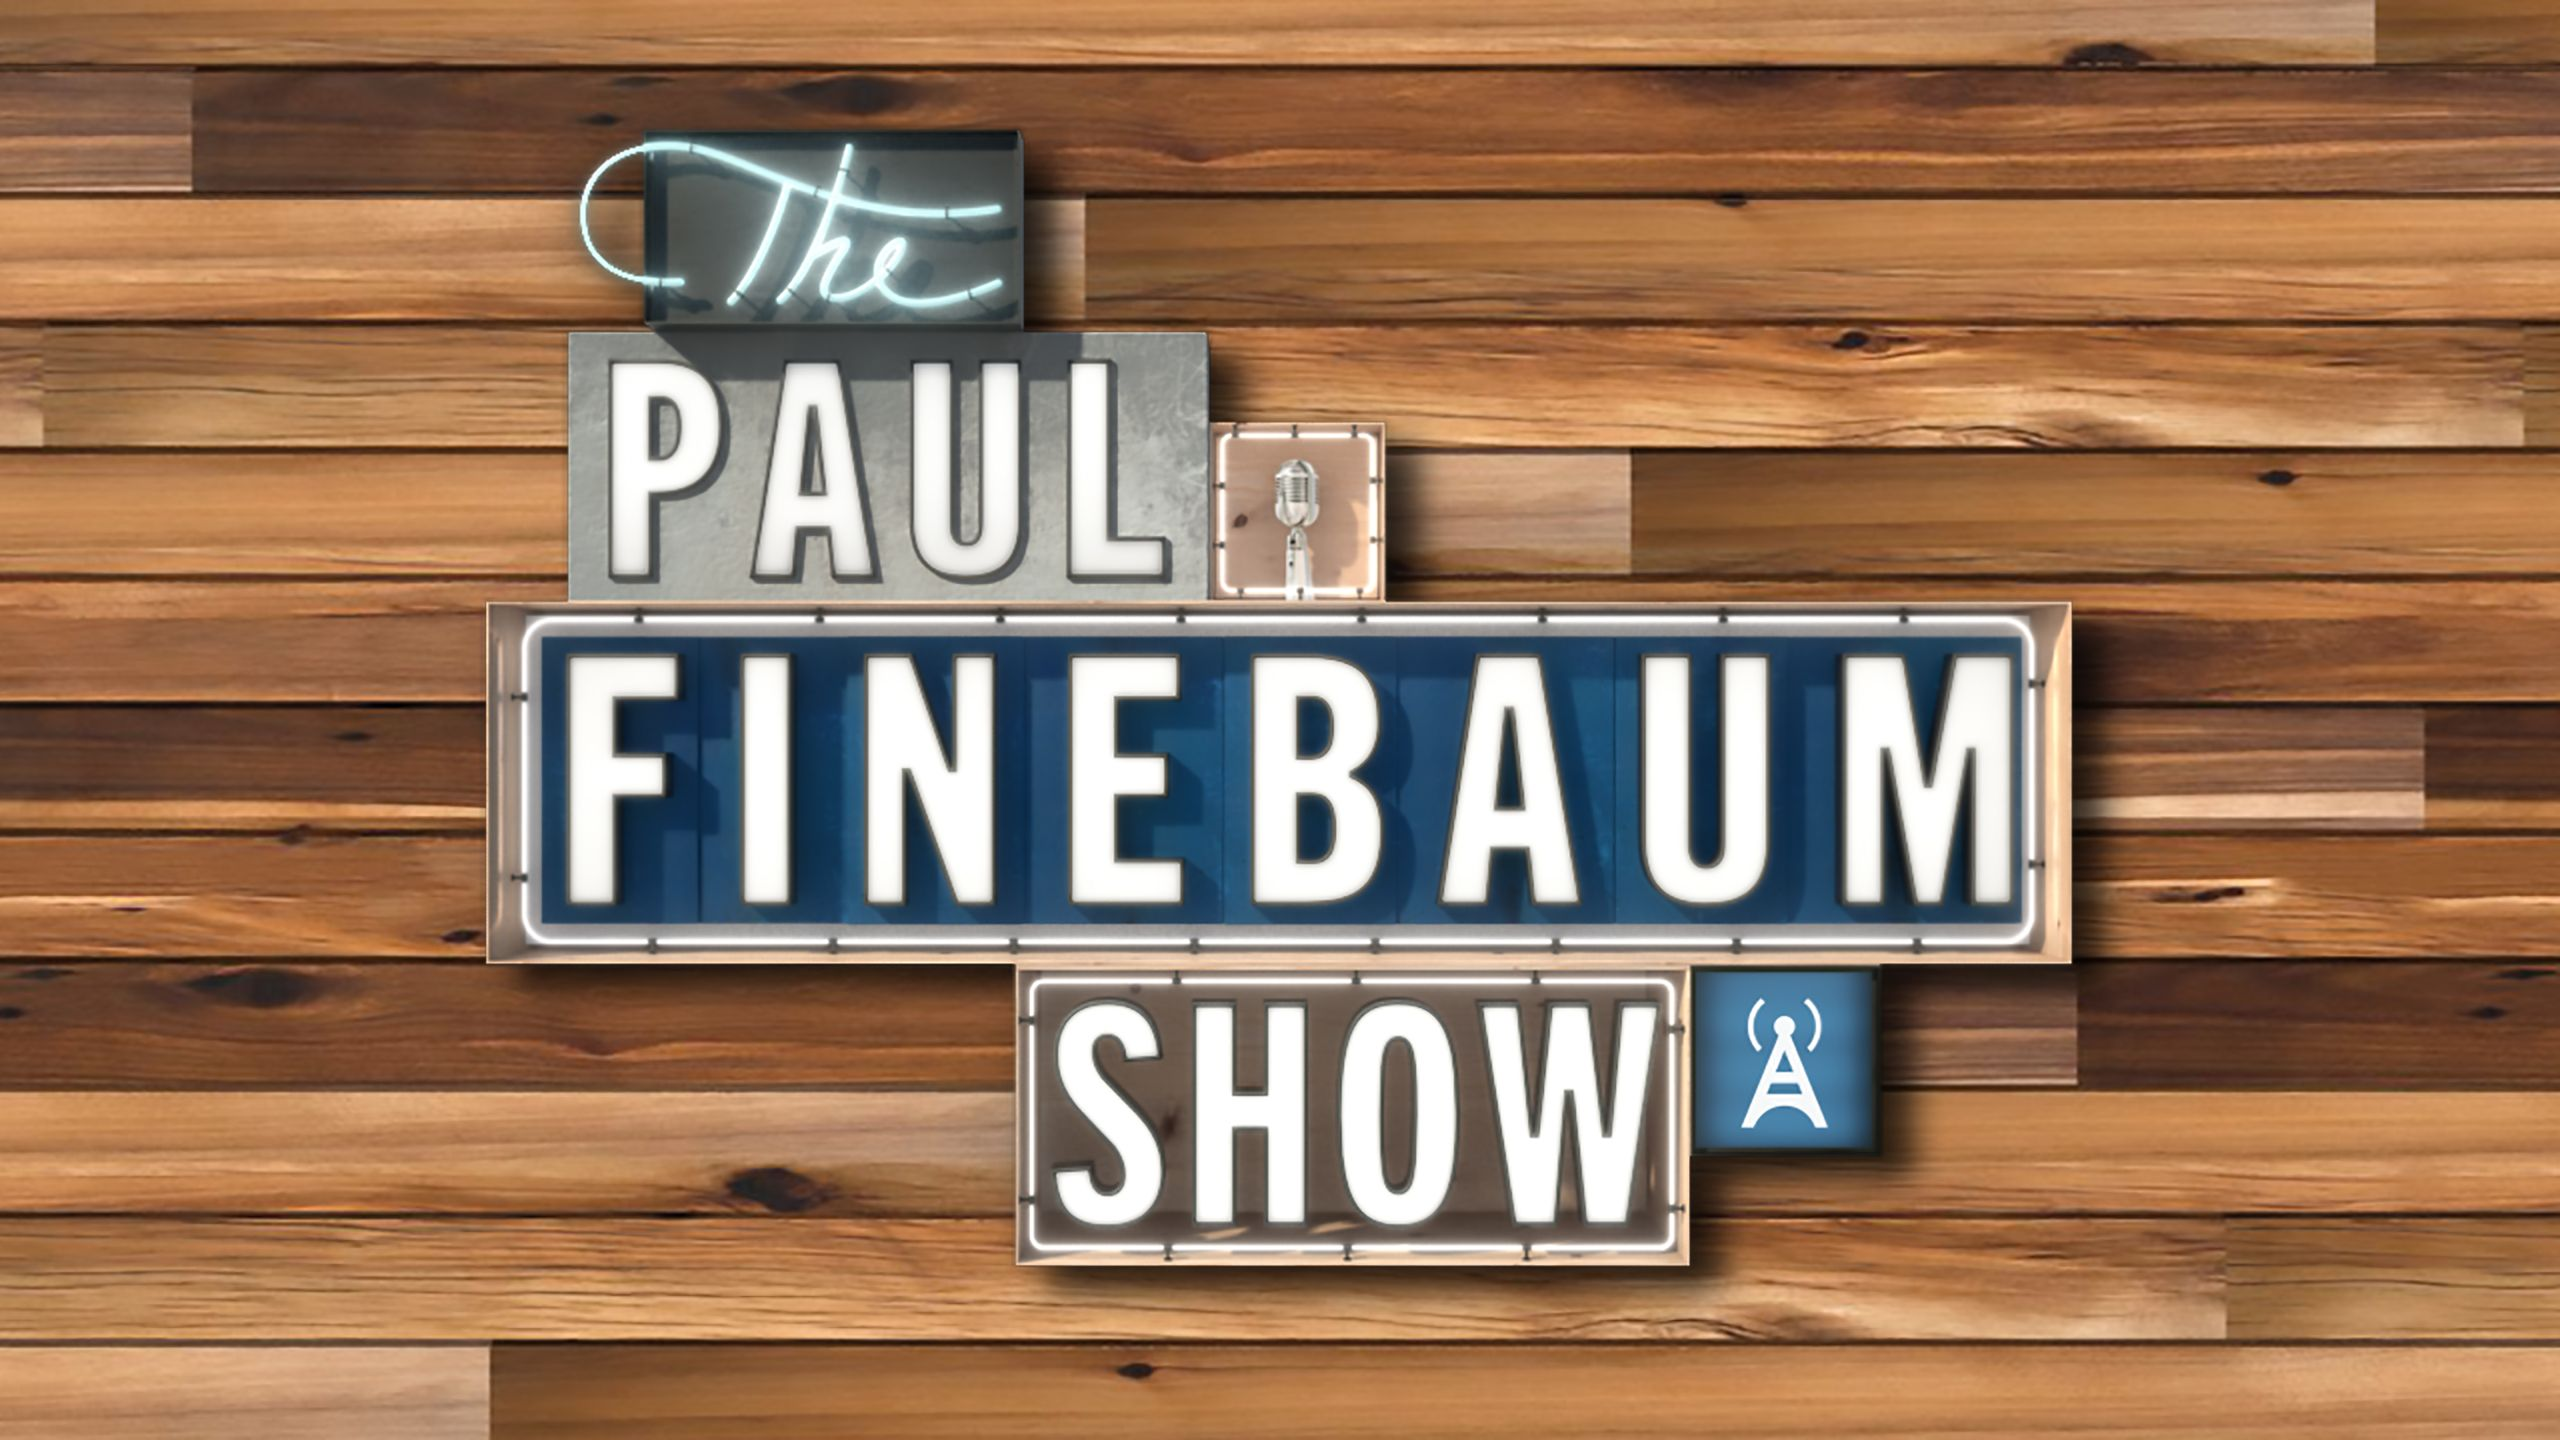 Thu, 12/14 - The Paul Finebaum Show